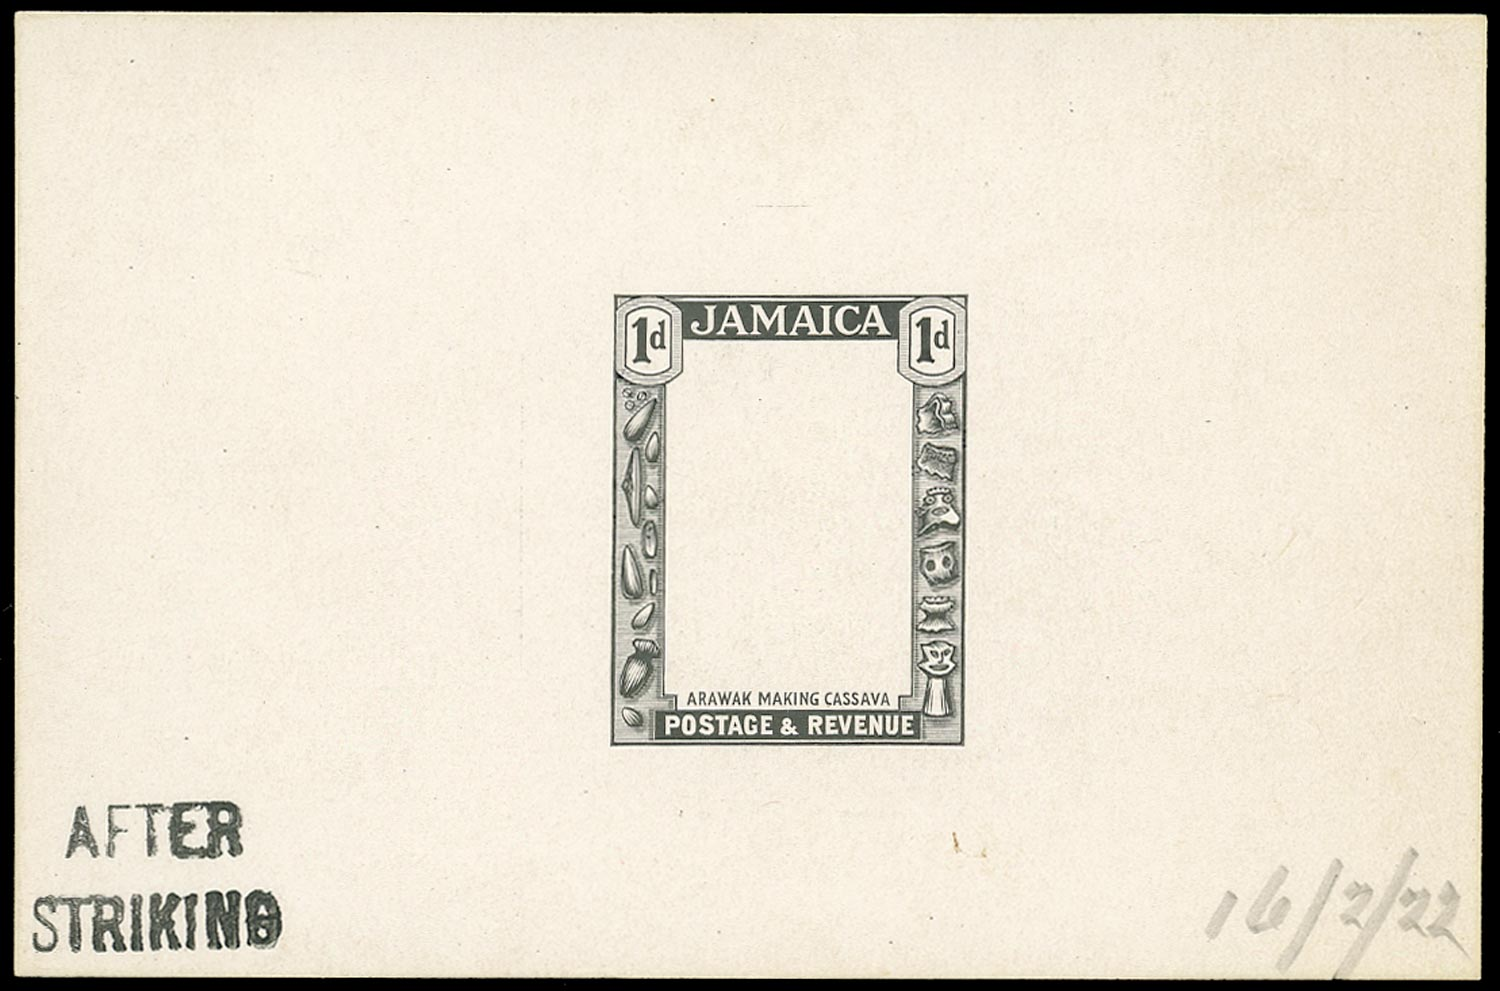 JAMAICA 1922  SG95 Proof of the frame for the 1921-29 1d stamped AFTER STRIKING